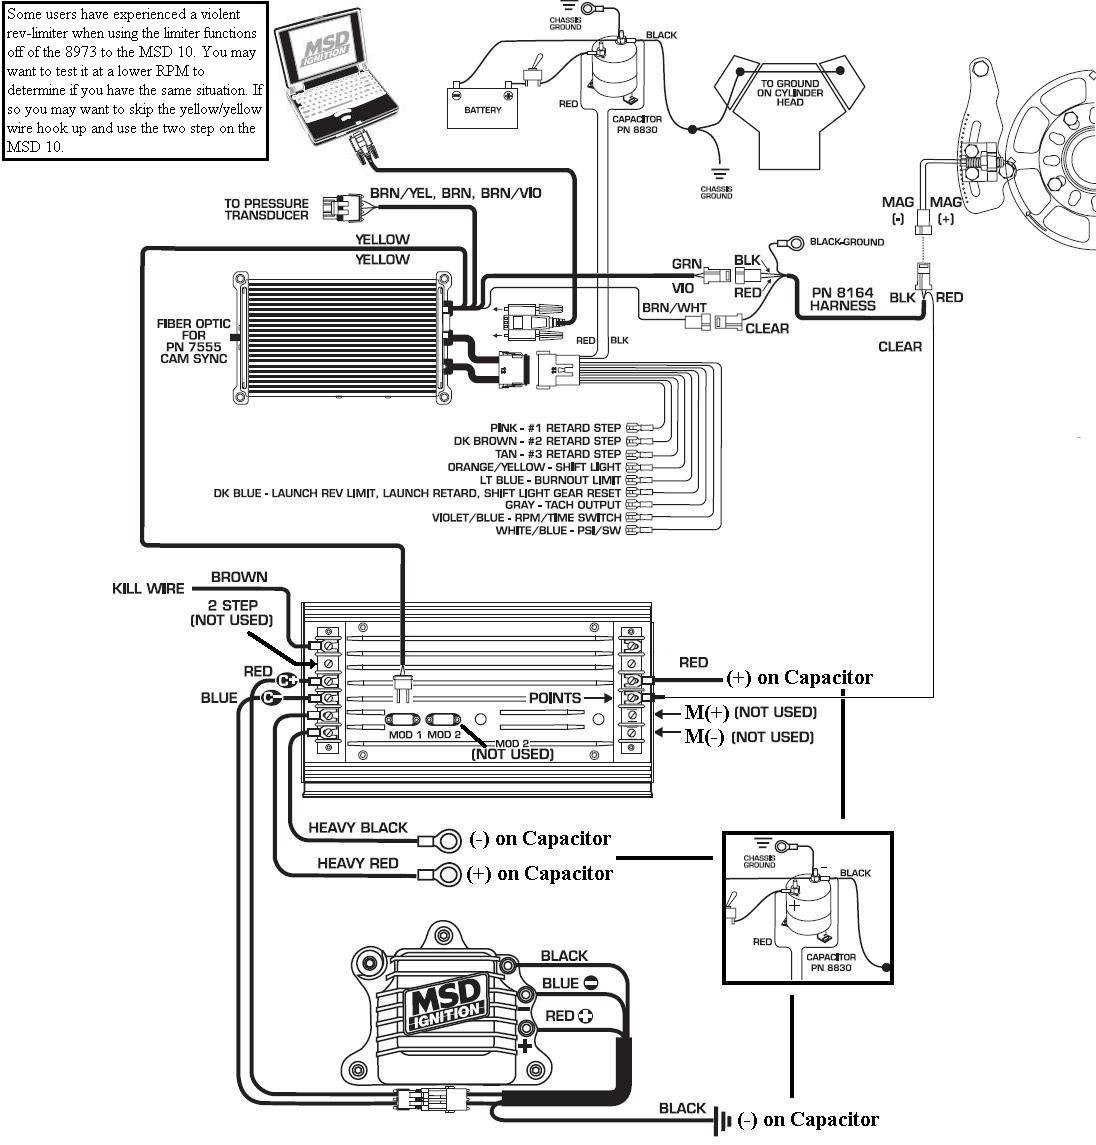 Ford 460 Msd Ignition Wiring Diagram Ford Solenoid Wiring